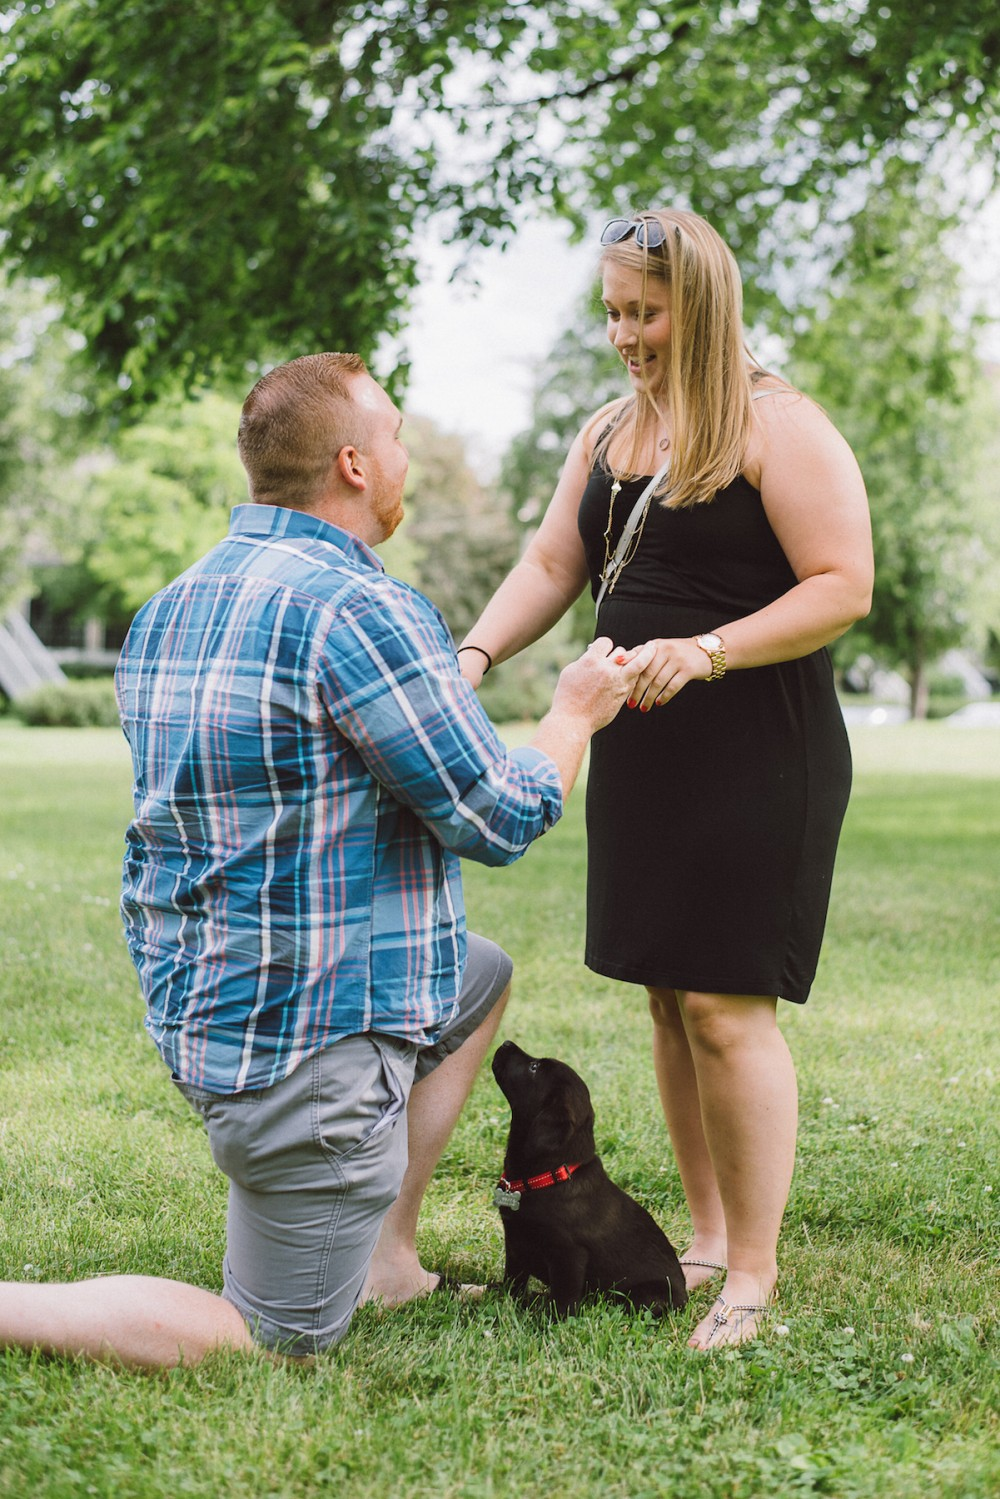 Image 5 of Stefani and Rollen's Surprise Puppy Proposal